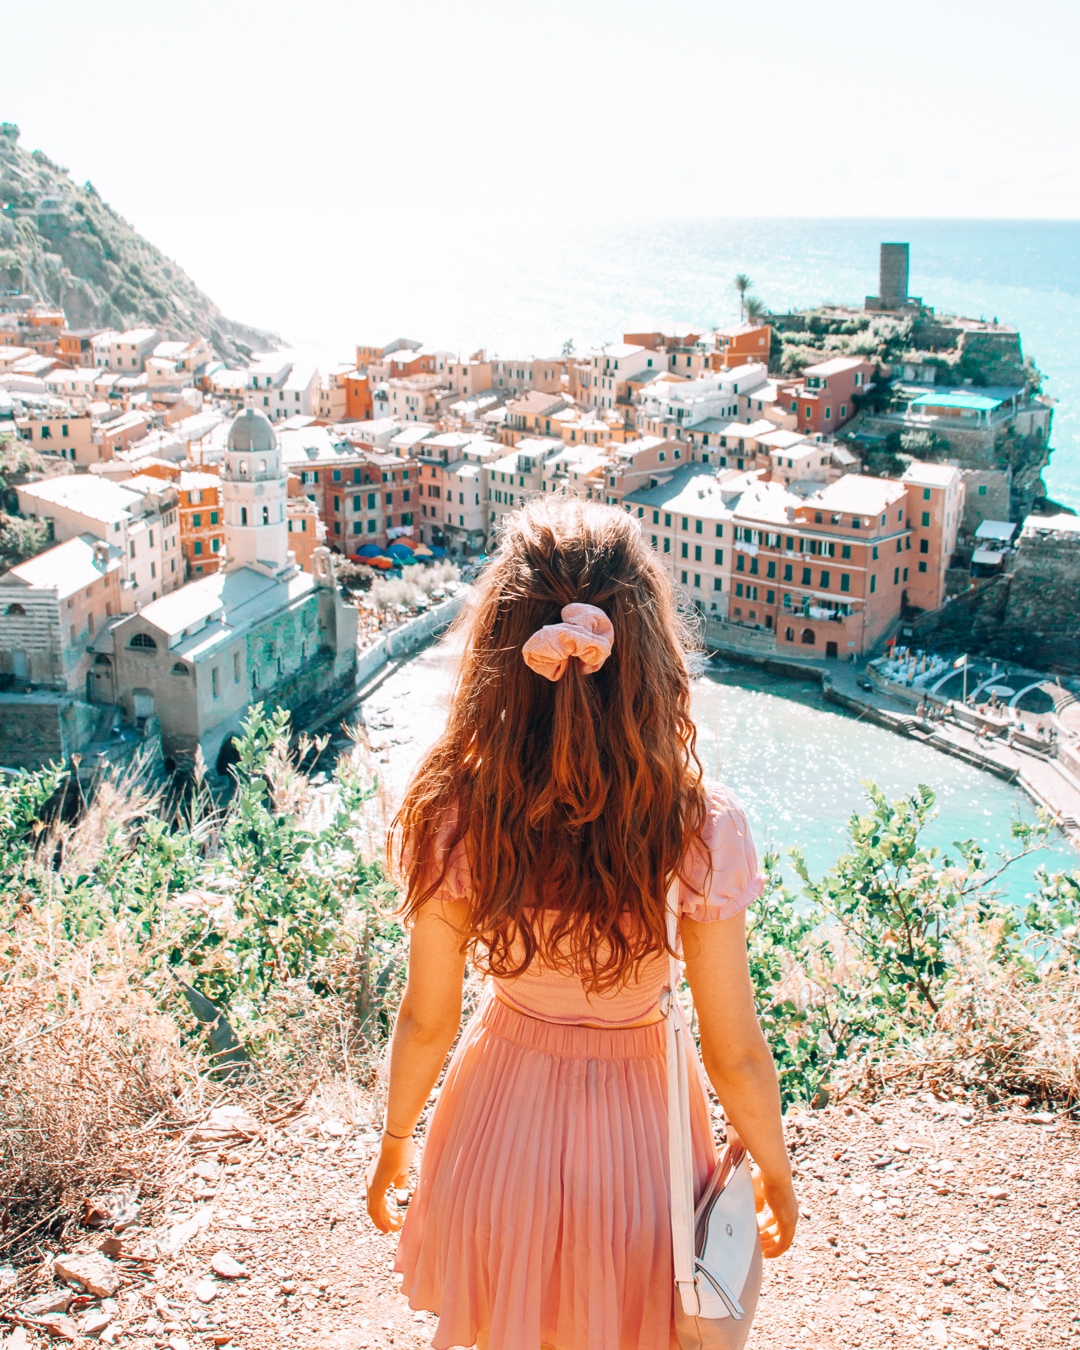 Viewpoint in Vernazza